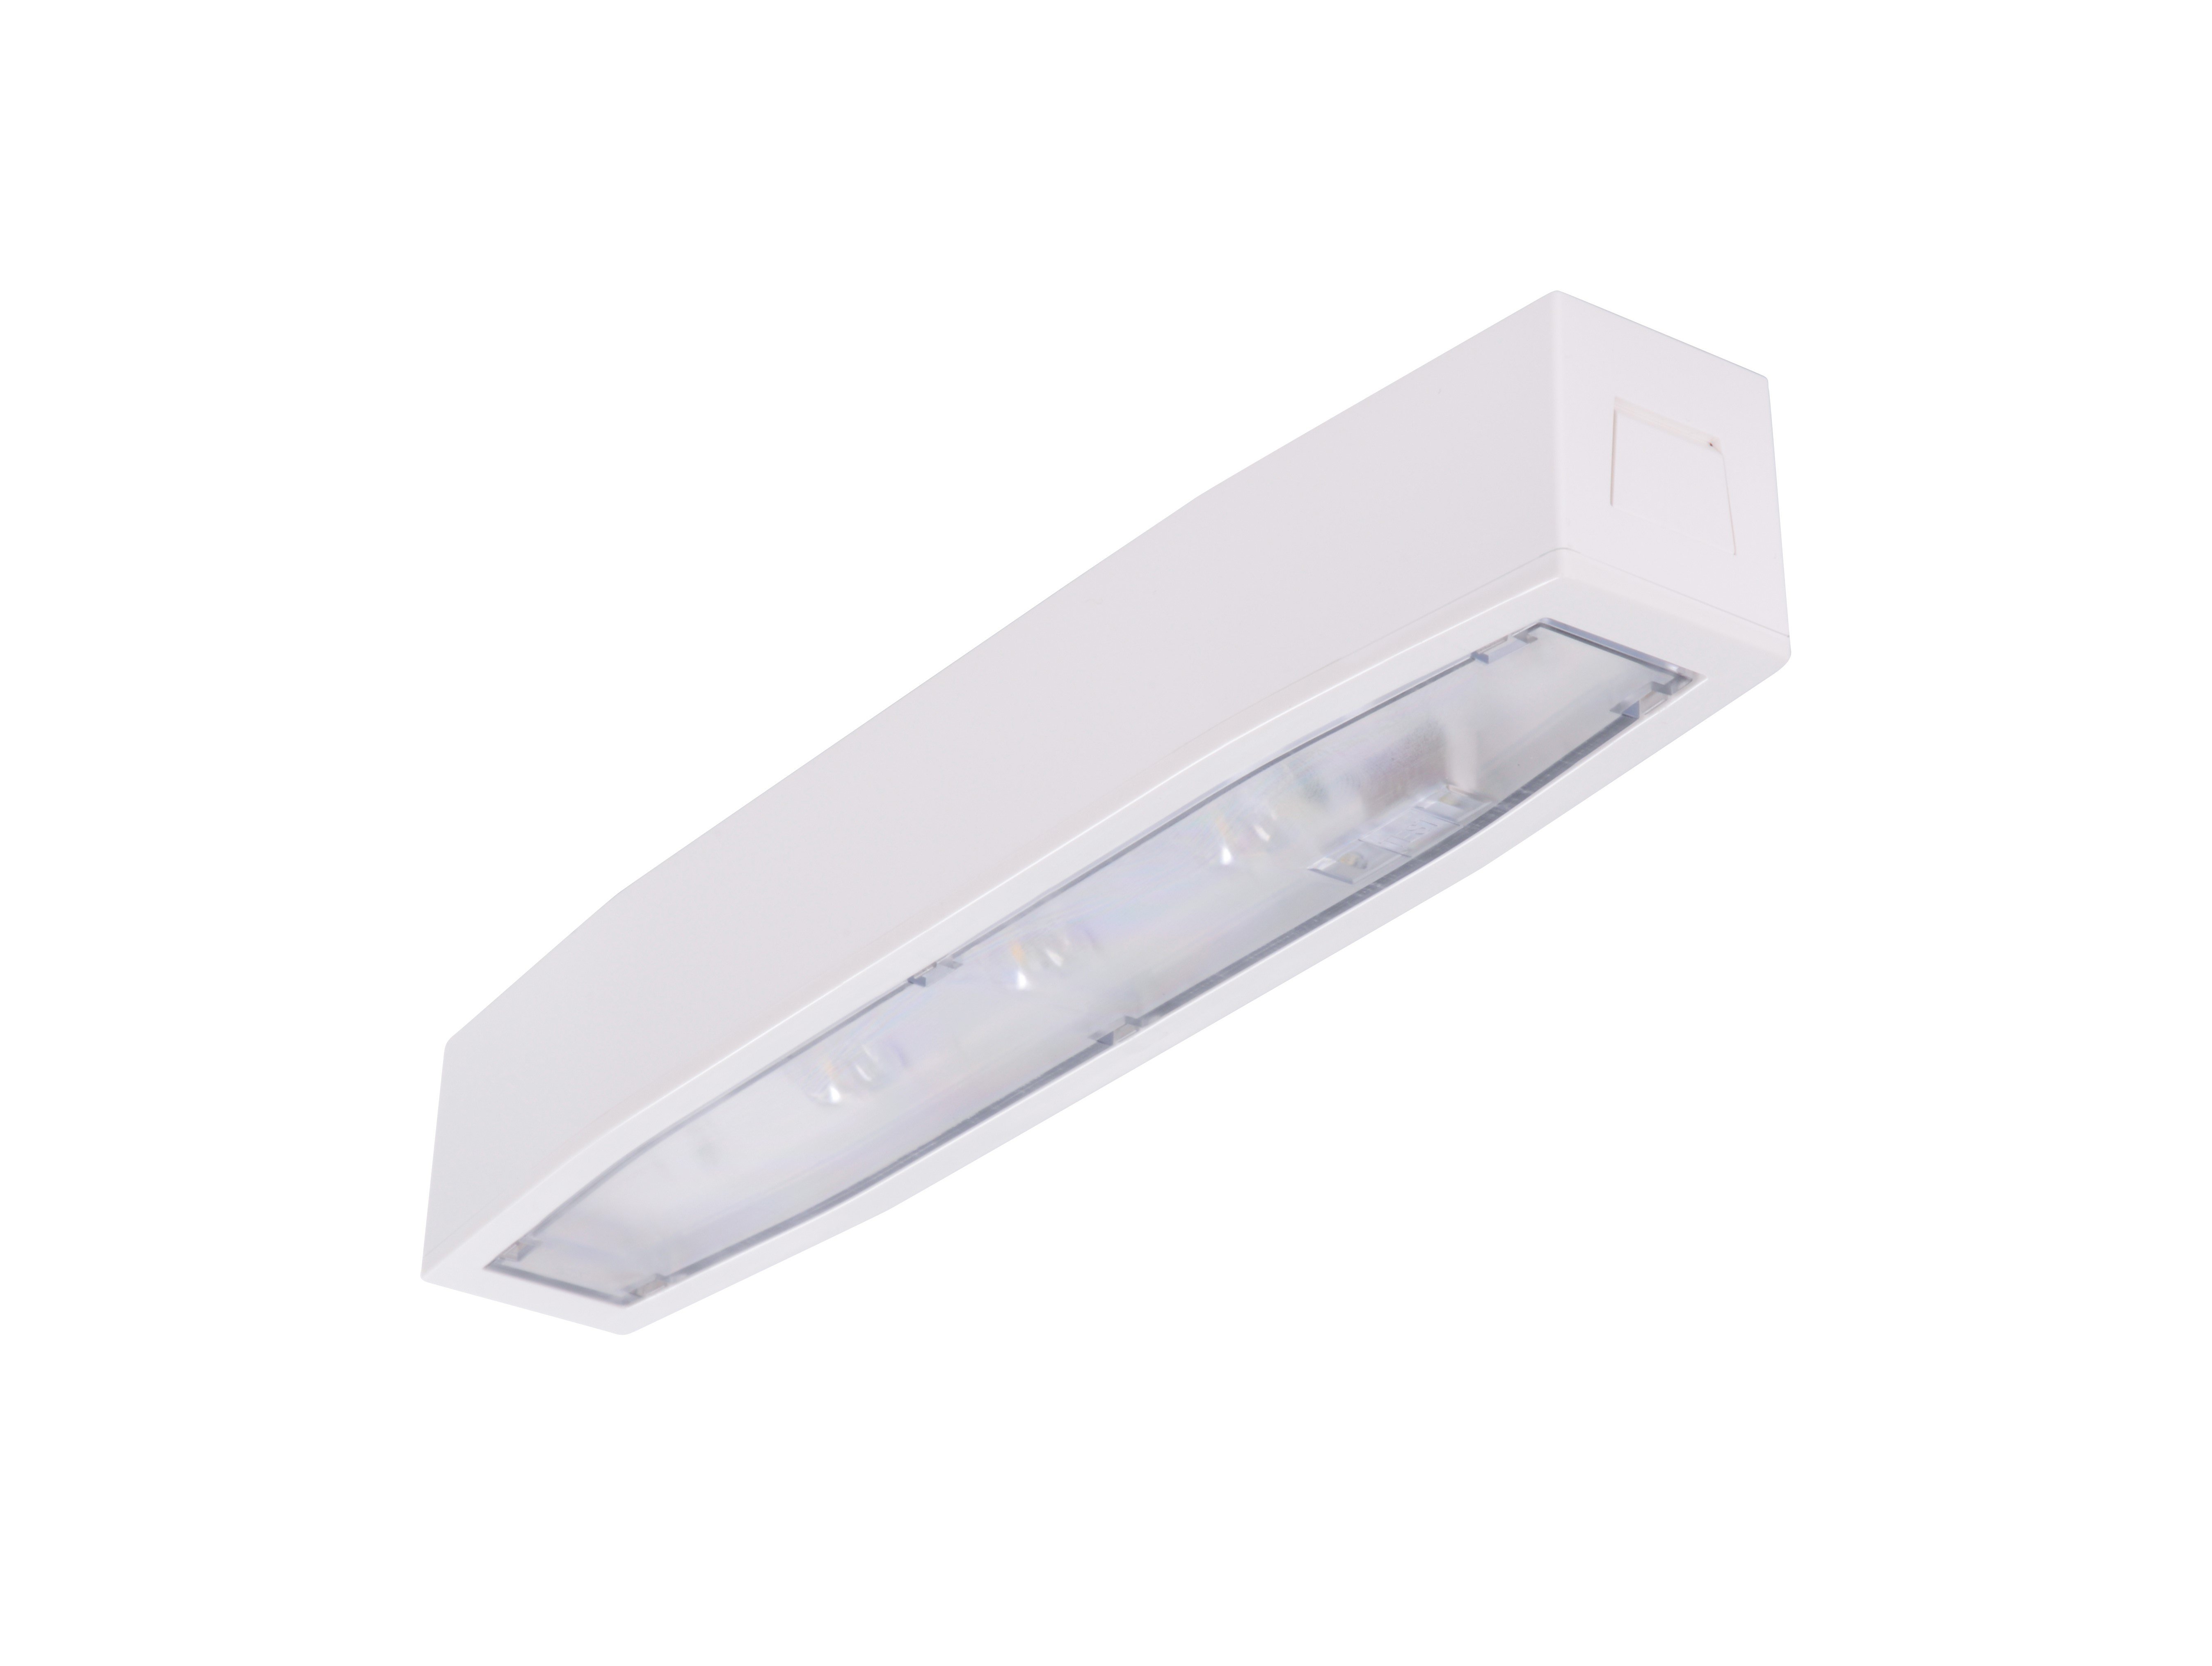 Lampa emergenta led Intelight 94764   3h mentinut test automat 0